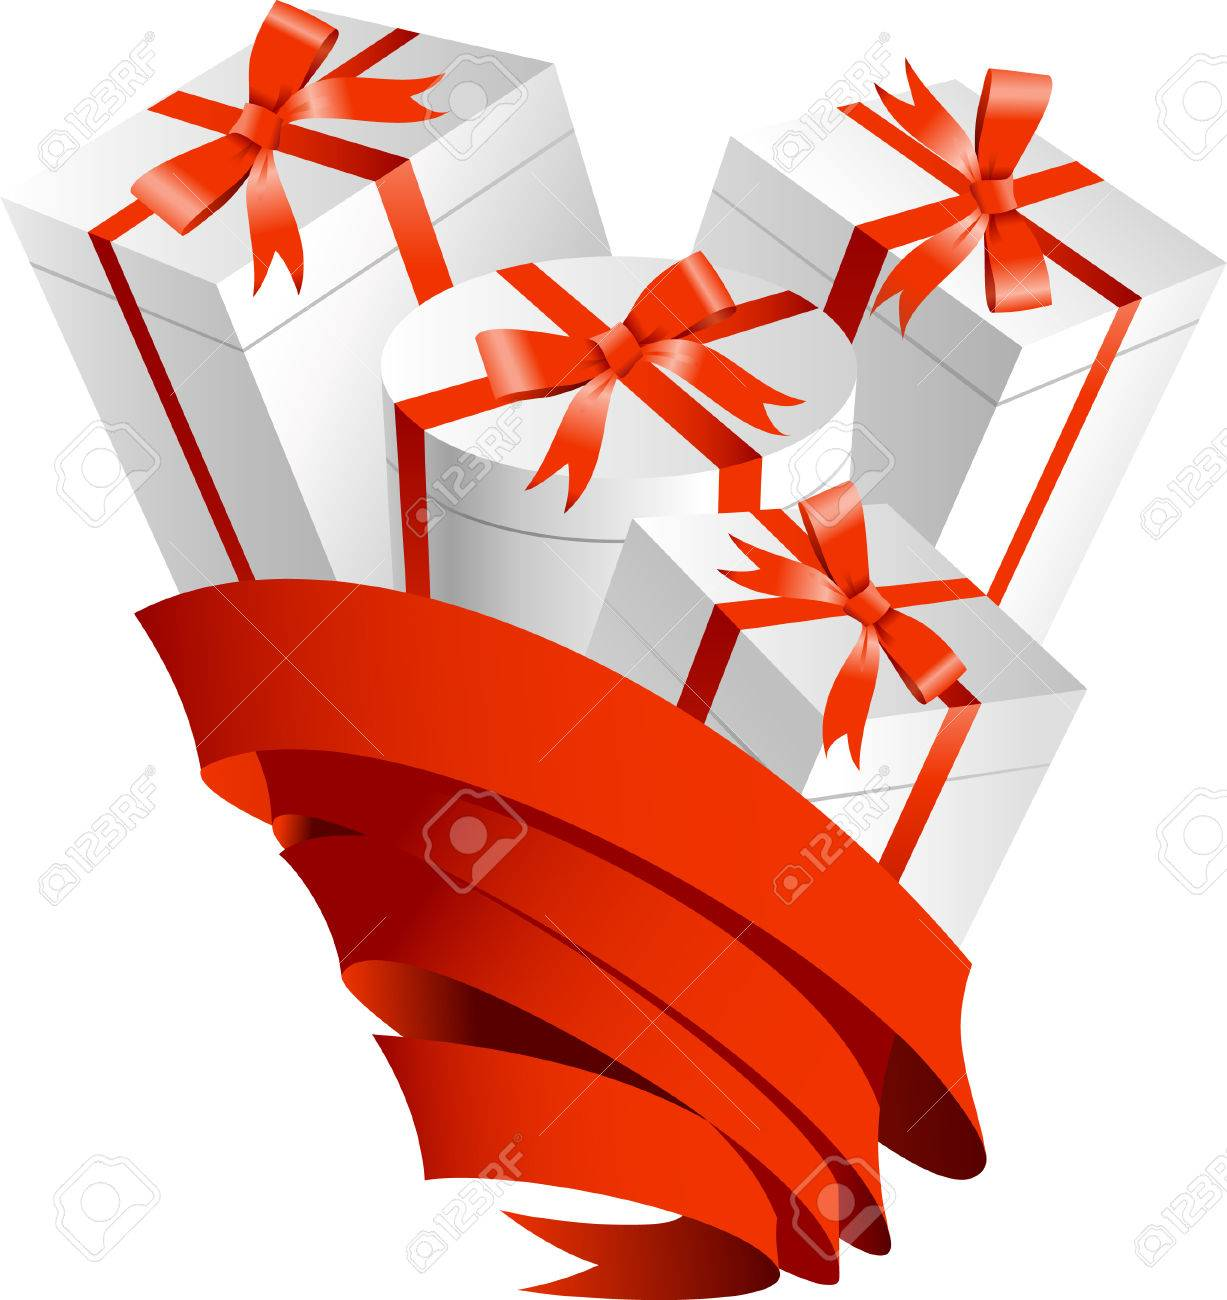 Gifts in ribbon   This image is a scalable vector illustration  of peoples and can be scaled to any size without loss of quality Stock Vector - 24542337